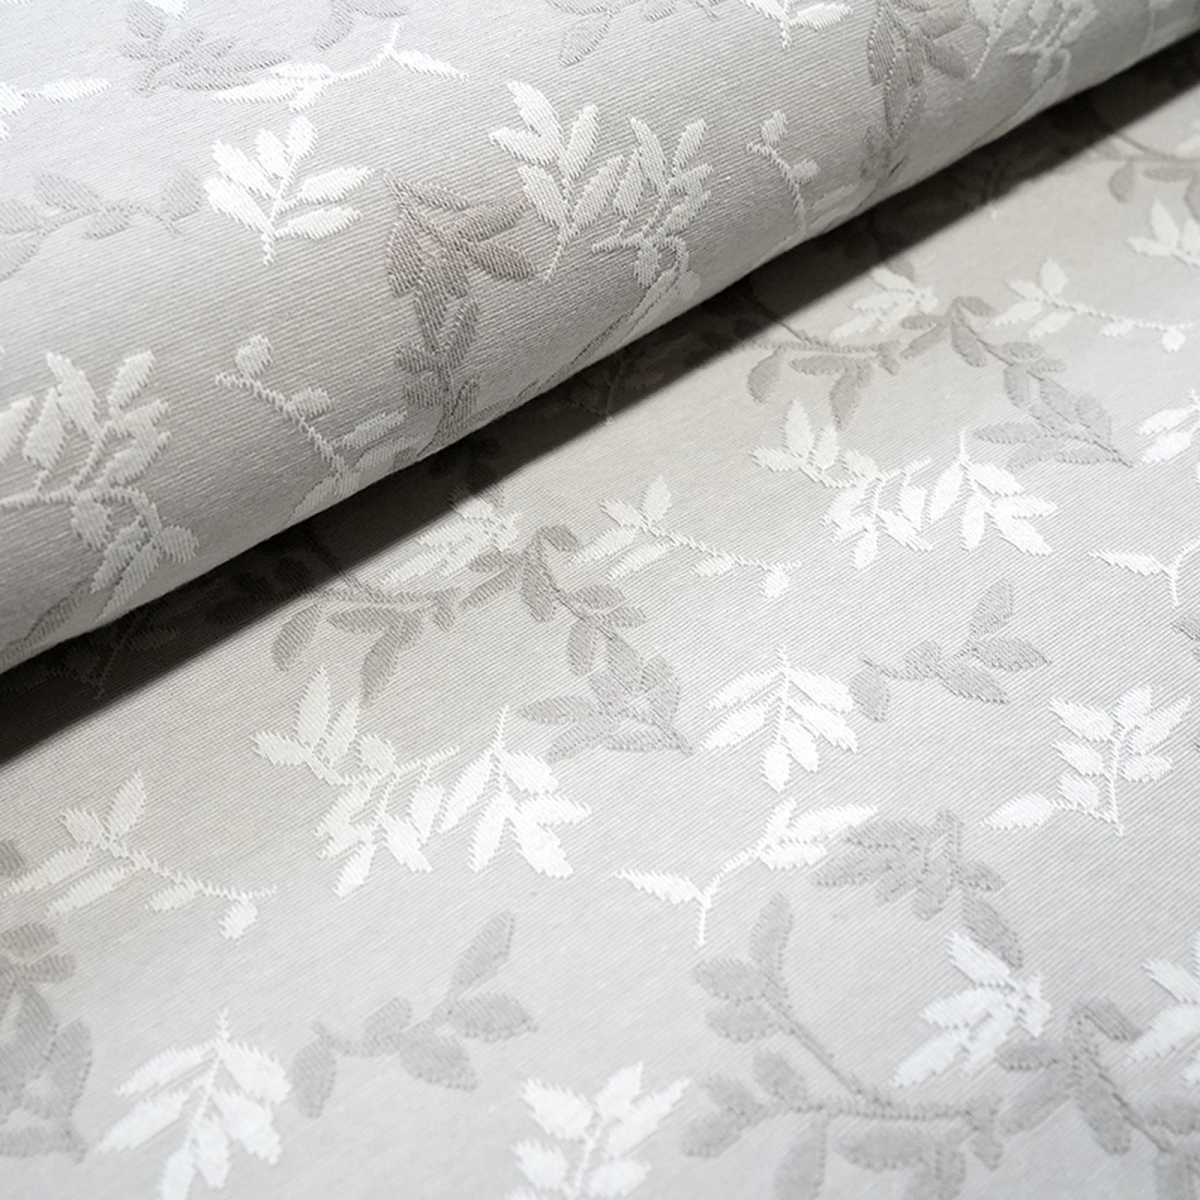 Relief-Jacquard Shiny Leaves - platin